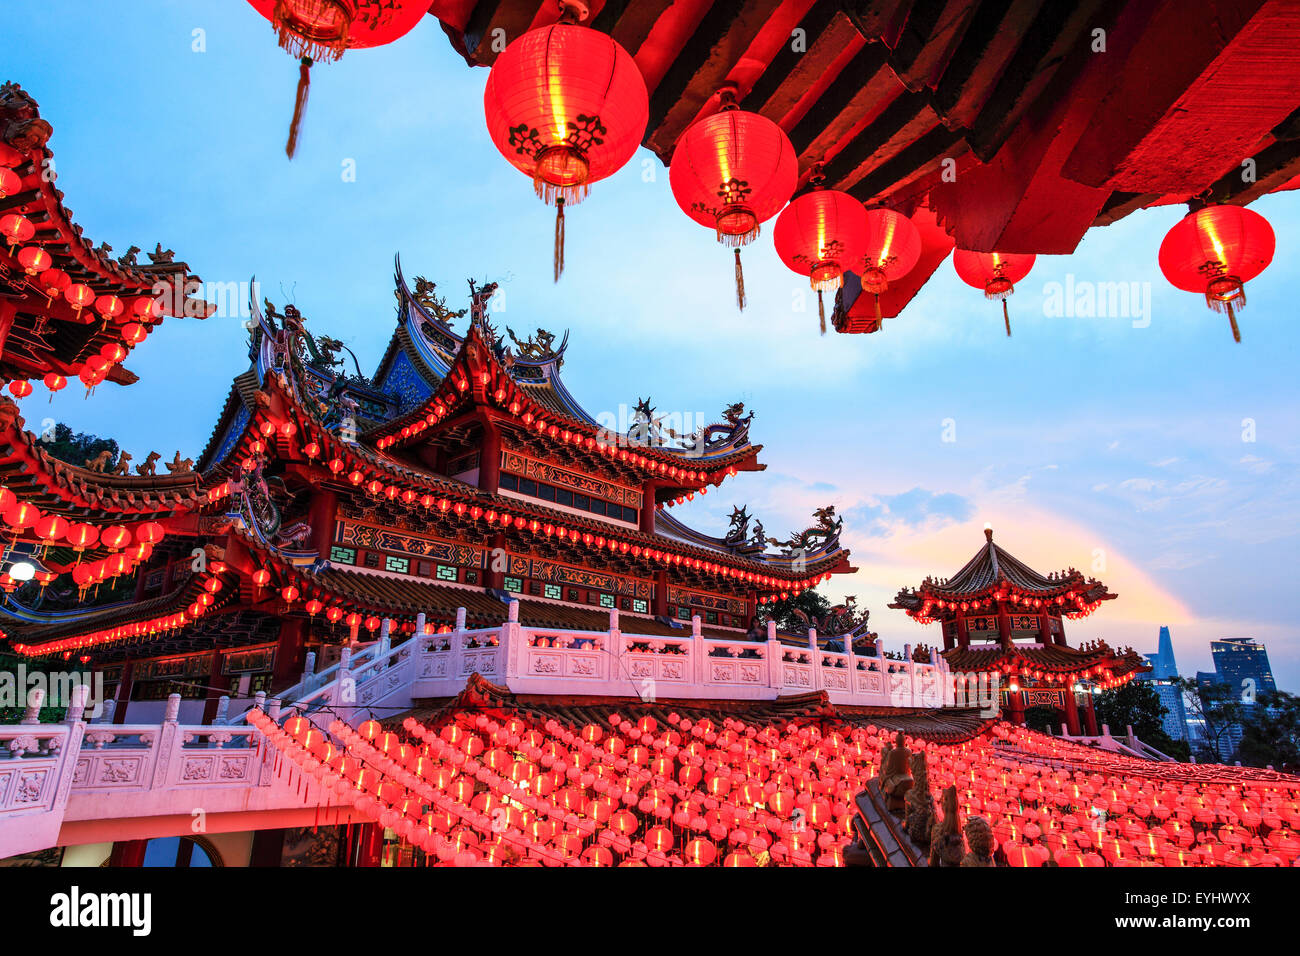 The Thean Hou Temple lanterns all lighted up during Chinese New Year. - Stock Image